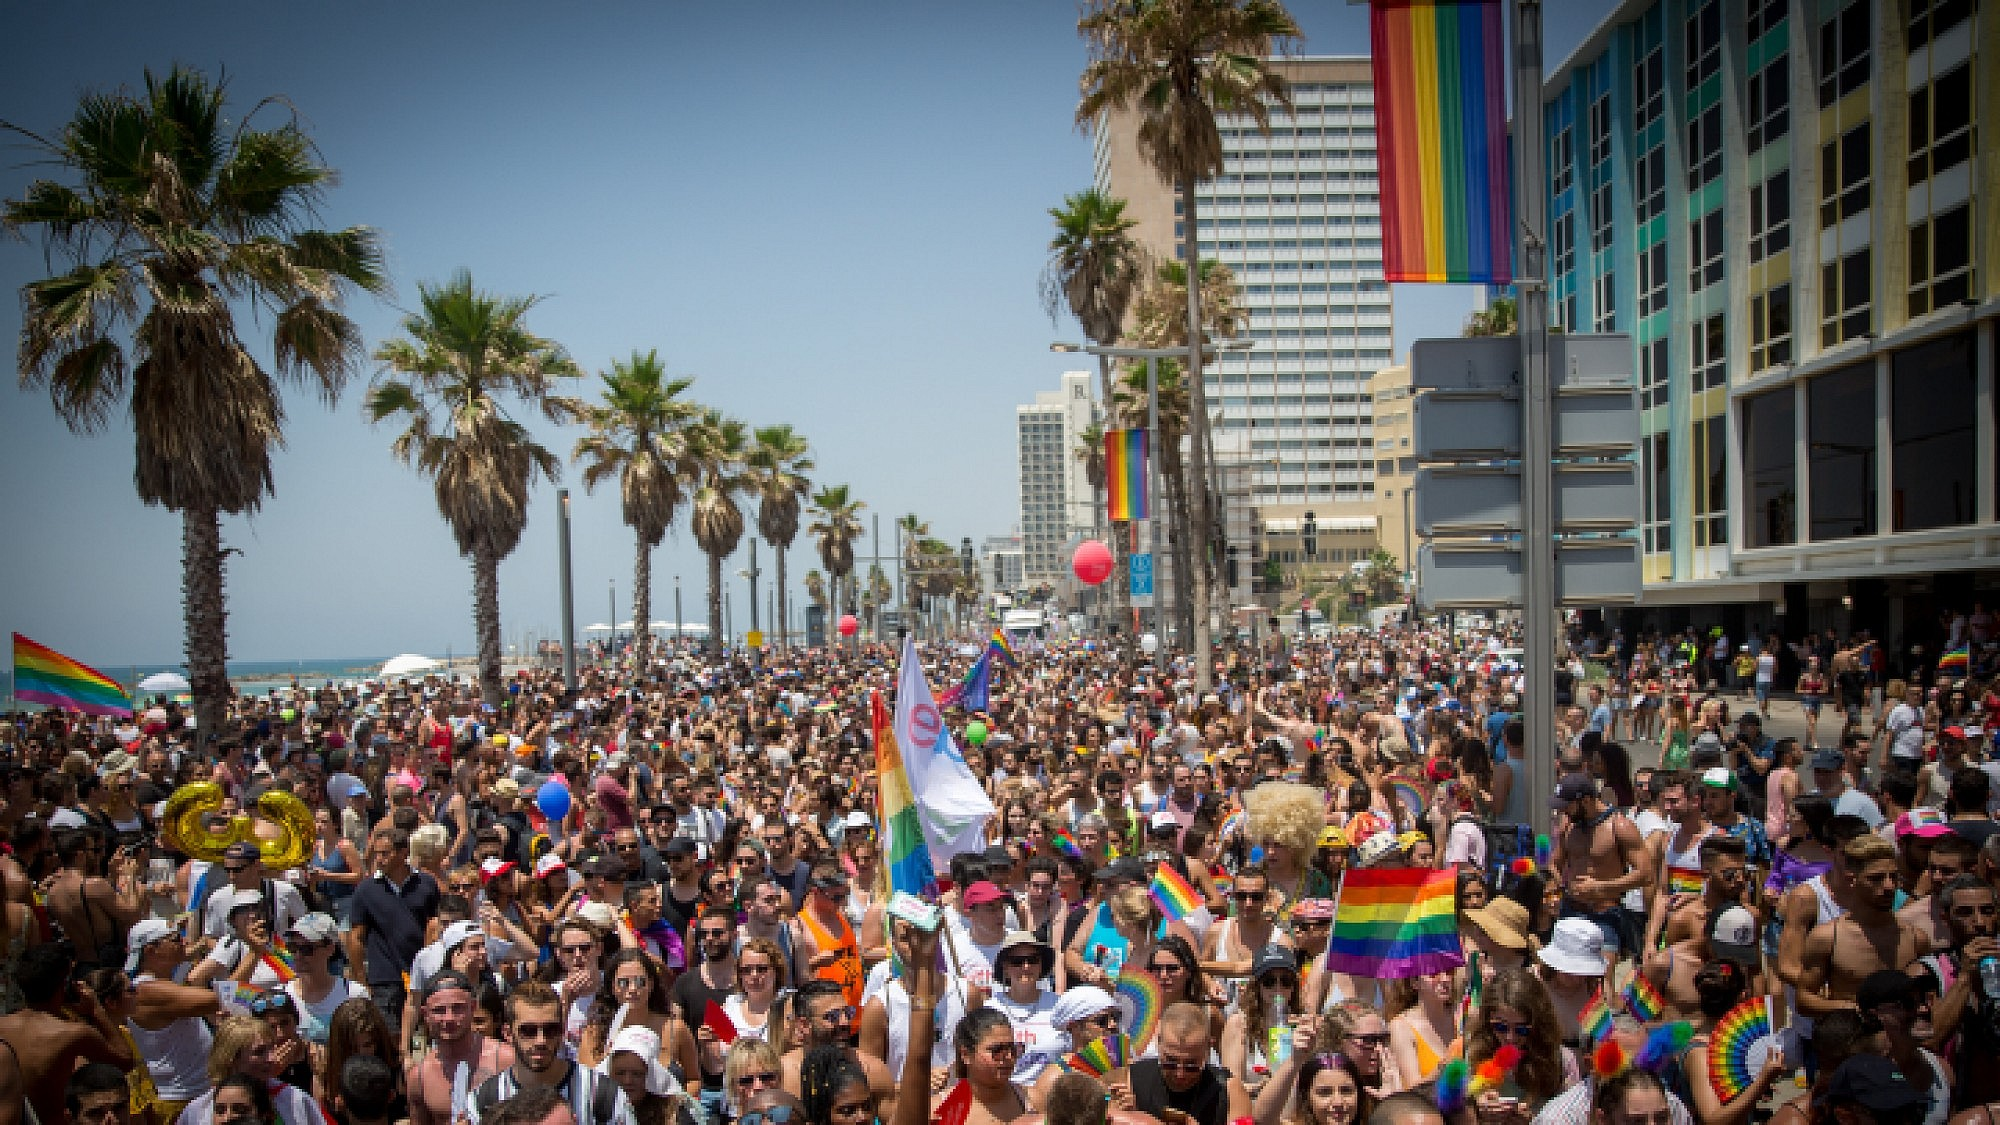 About 250 000 participate at the annual Gay Pride parade in Tel Aviv, on June 8, 2018. Friday's parade marks the end of Pride Week in Tel Aviv, internationally acclaimed as one of the most proud and gay-friendly cities in the world. Photo by Miriam Alster/Flash90.